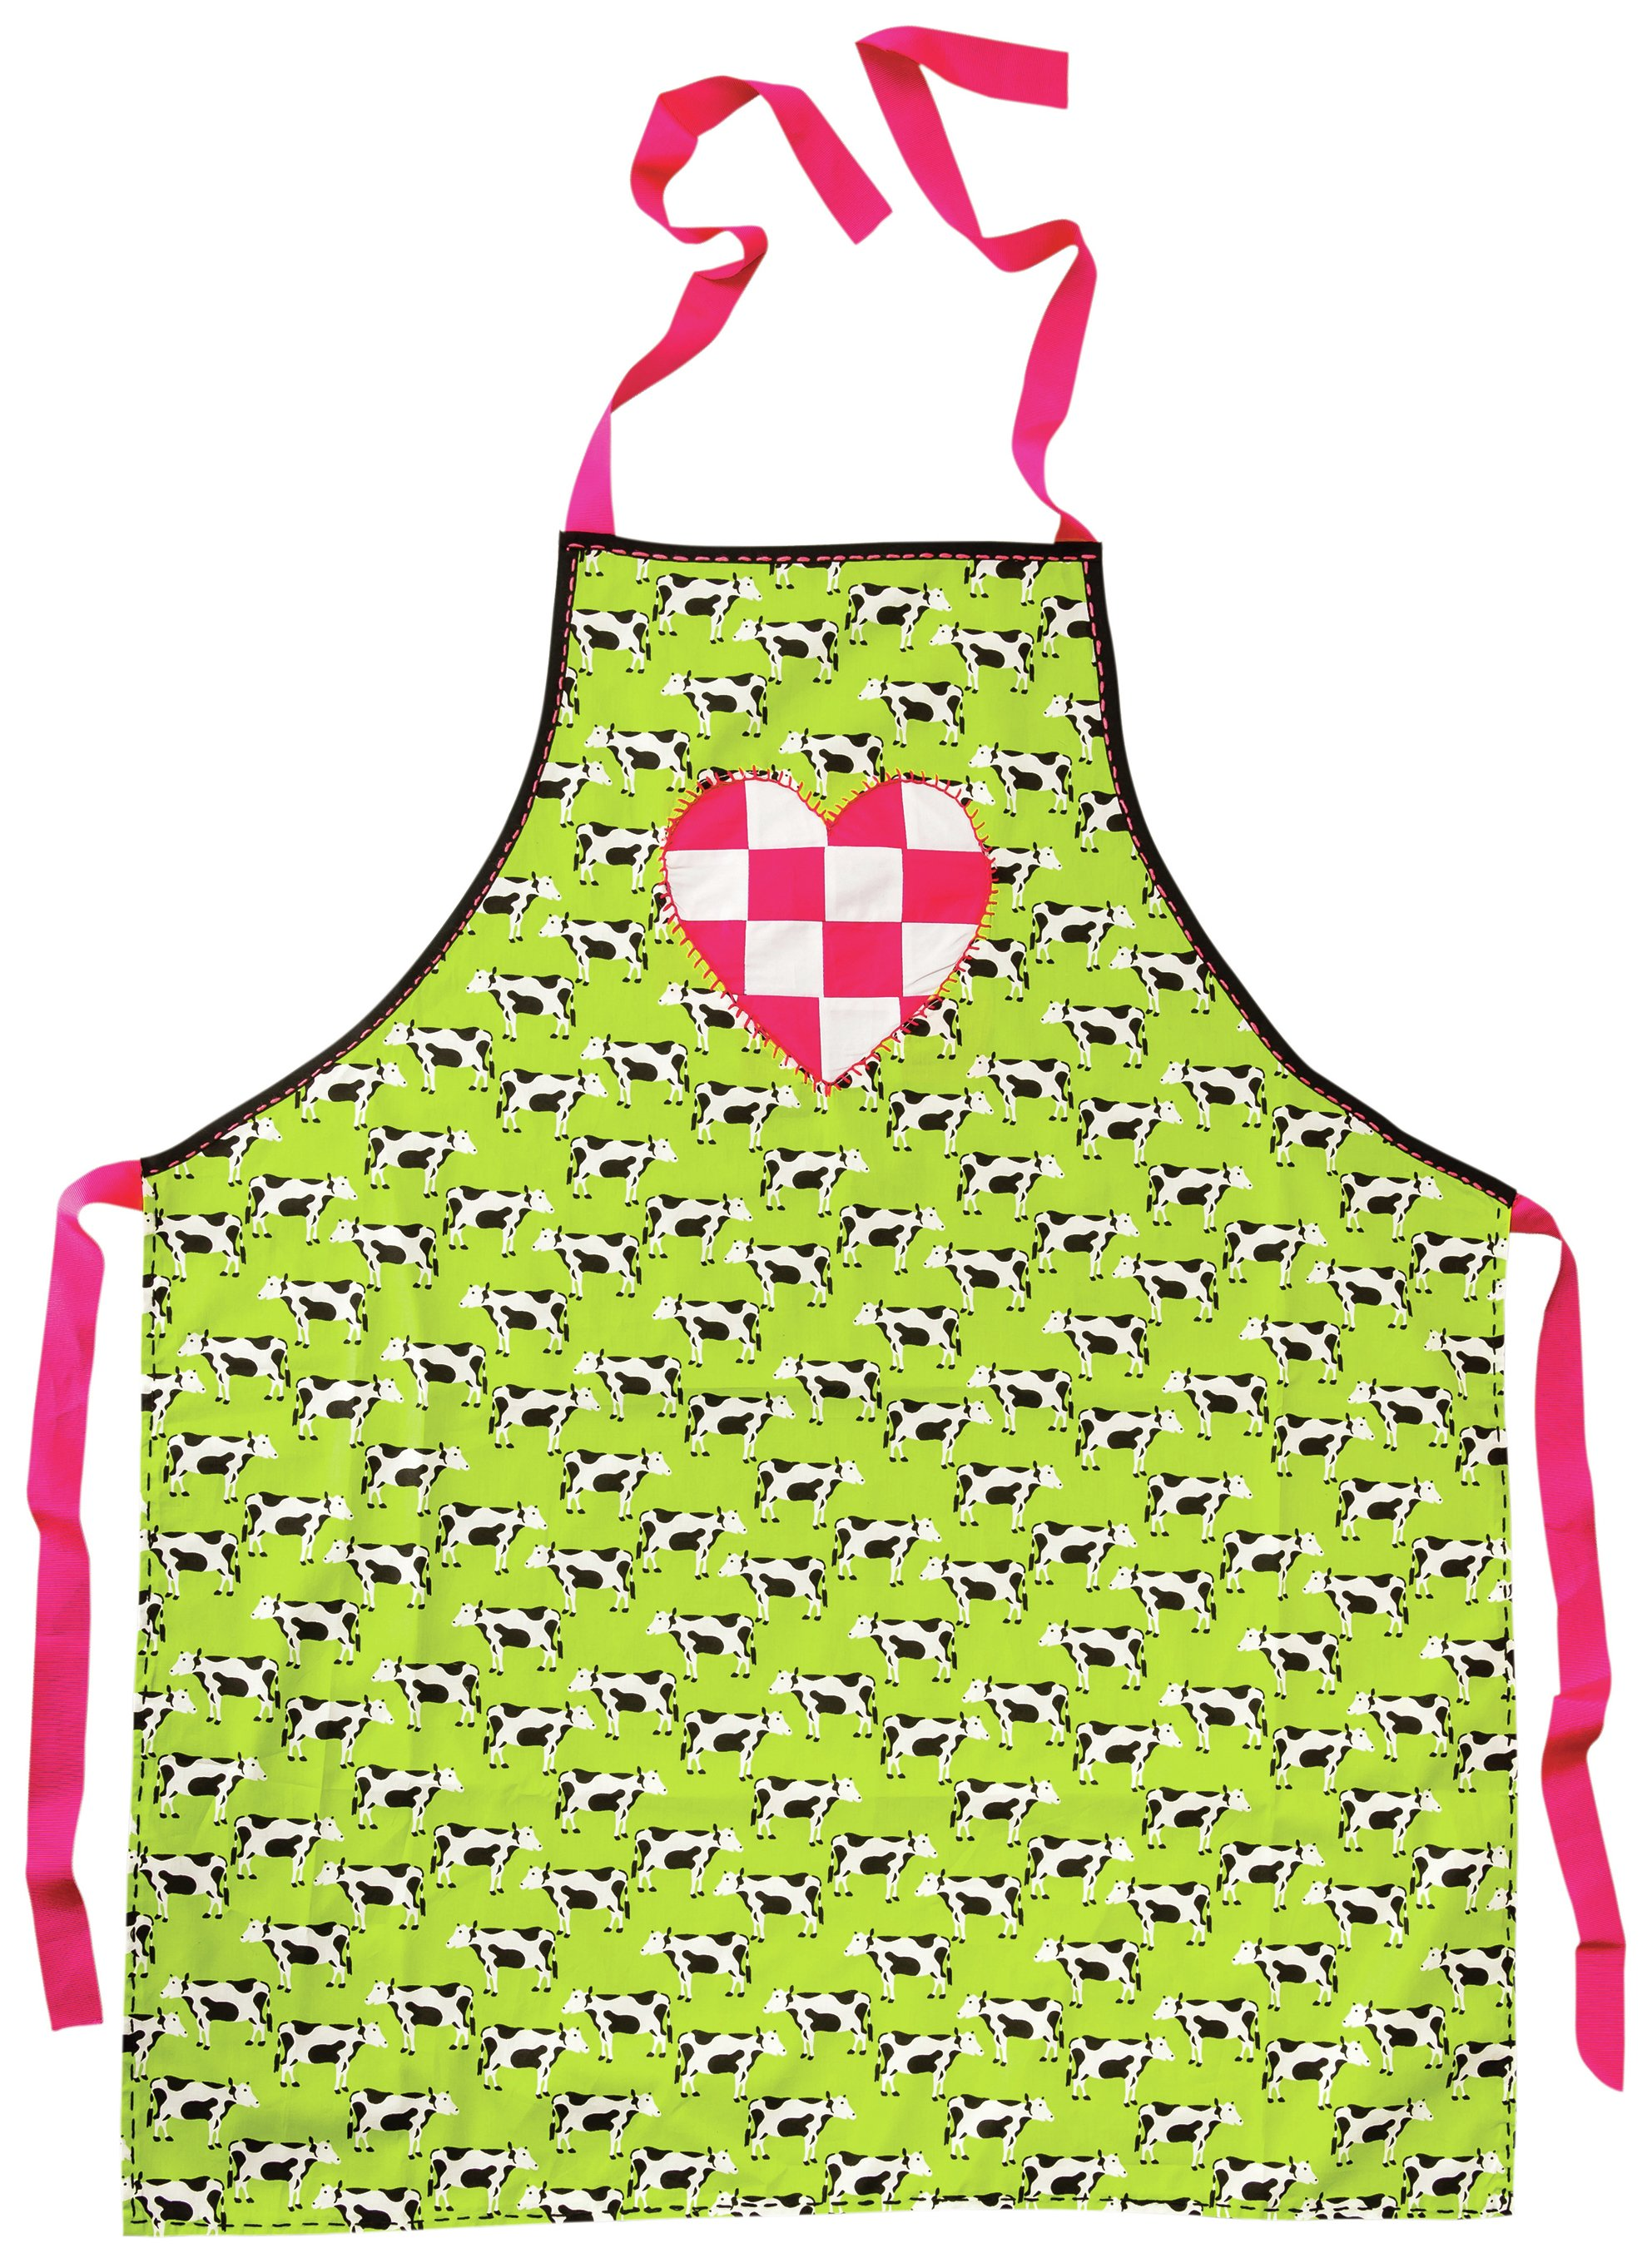 diy-creative-projects-patchwork-apron